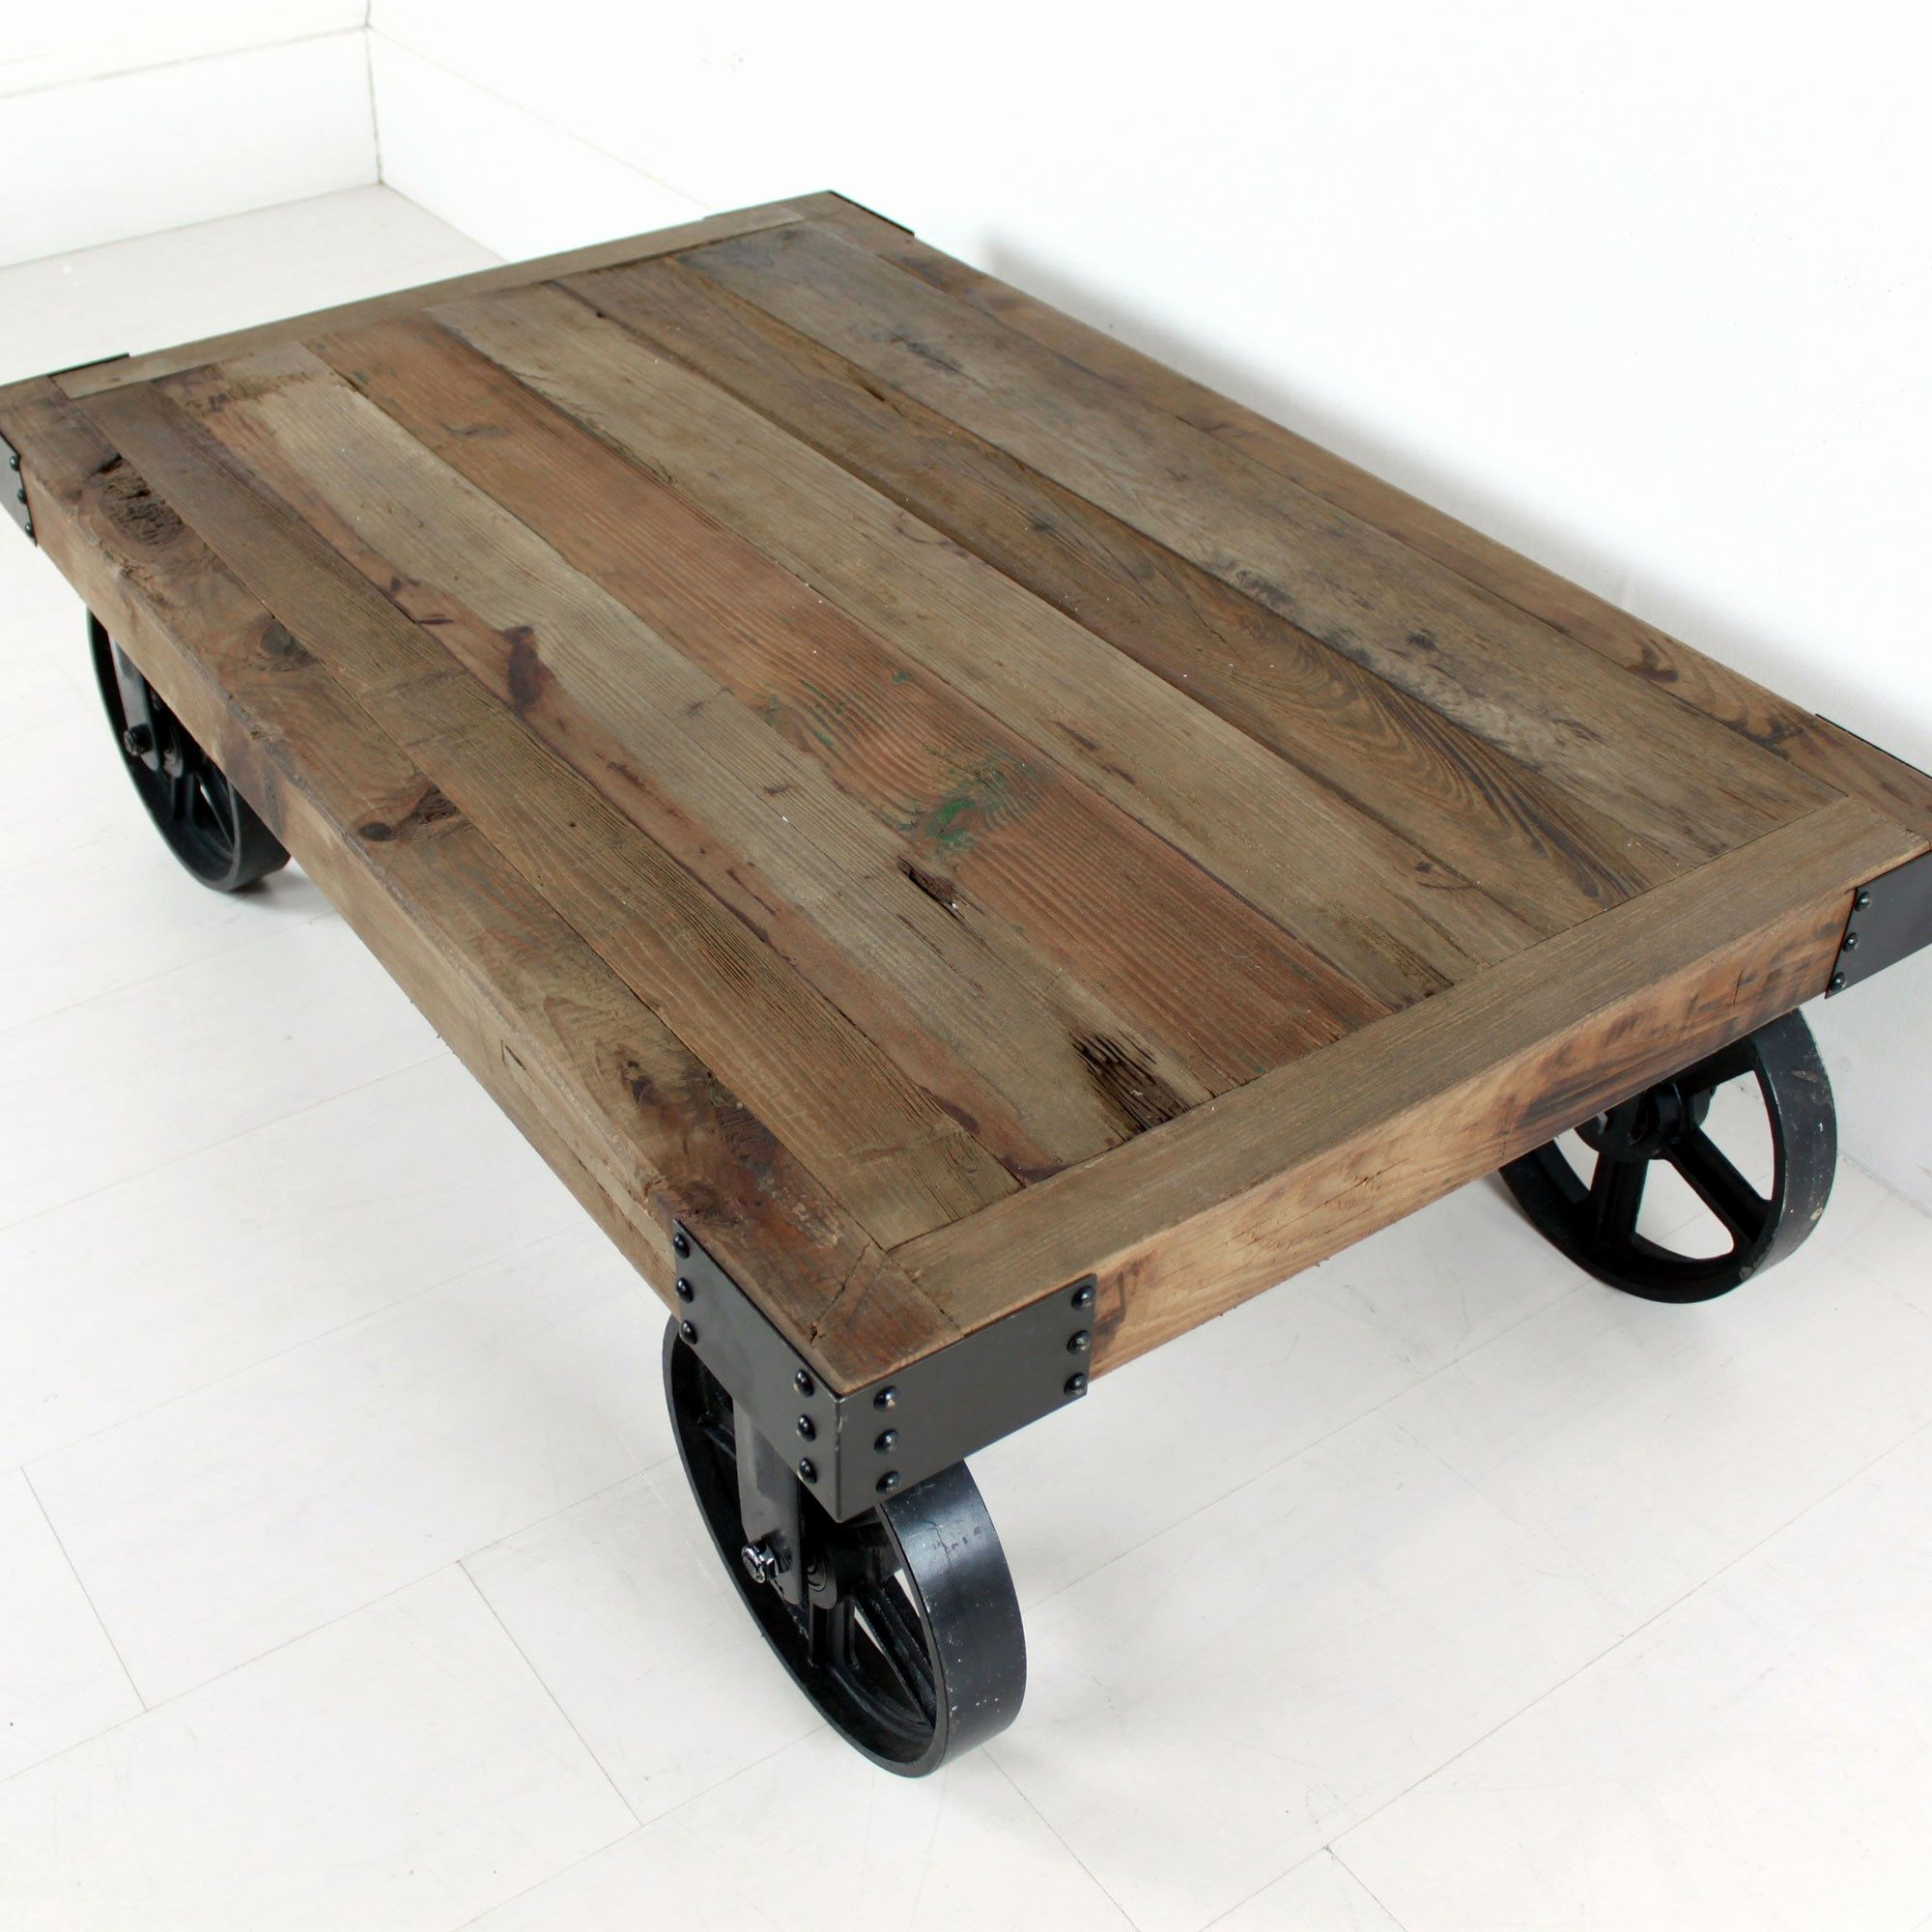 Small Coffee Table On Wheels Download Related Image Of Rustic Glass Coffee Table Luxury Coffe Coffee Table Wood Rustic Coffee Table Sets Coffee Table [ 2000 x 2000 Pixel ]